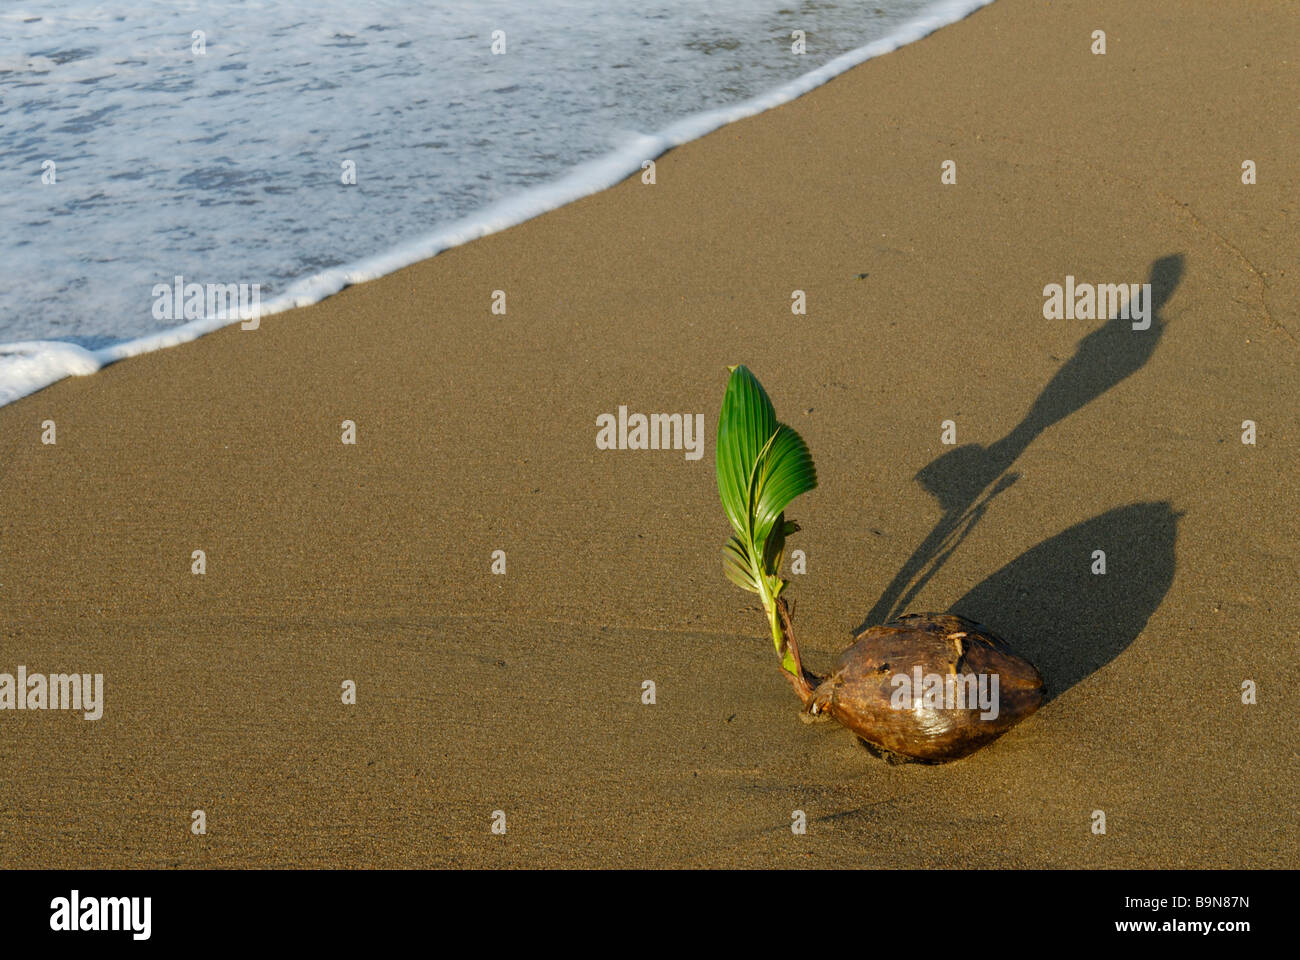 Coconut bourgeonnant sur beach, Costa Rica Photo Stock